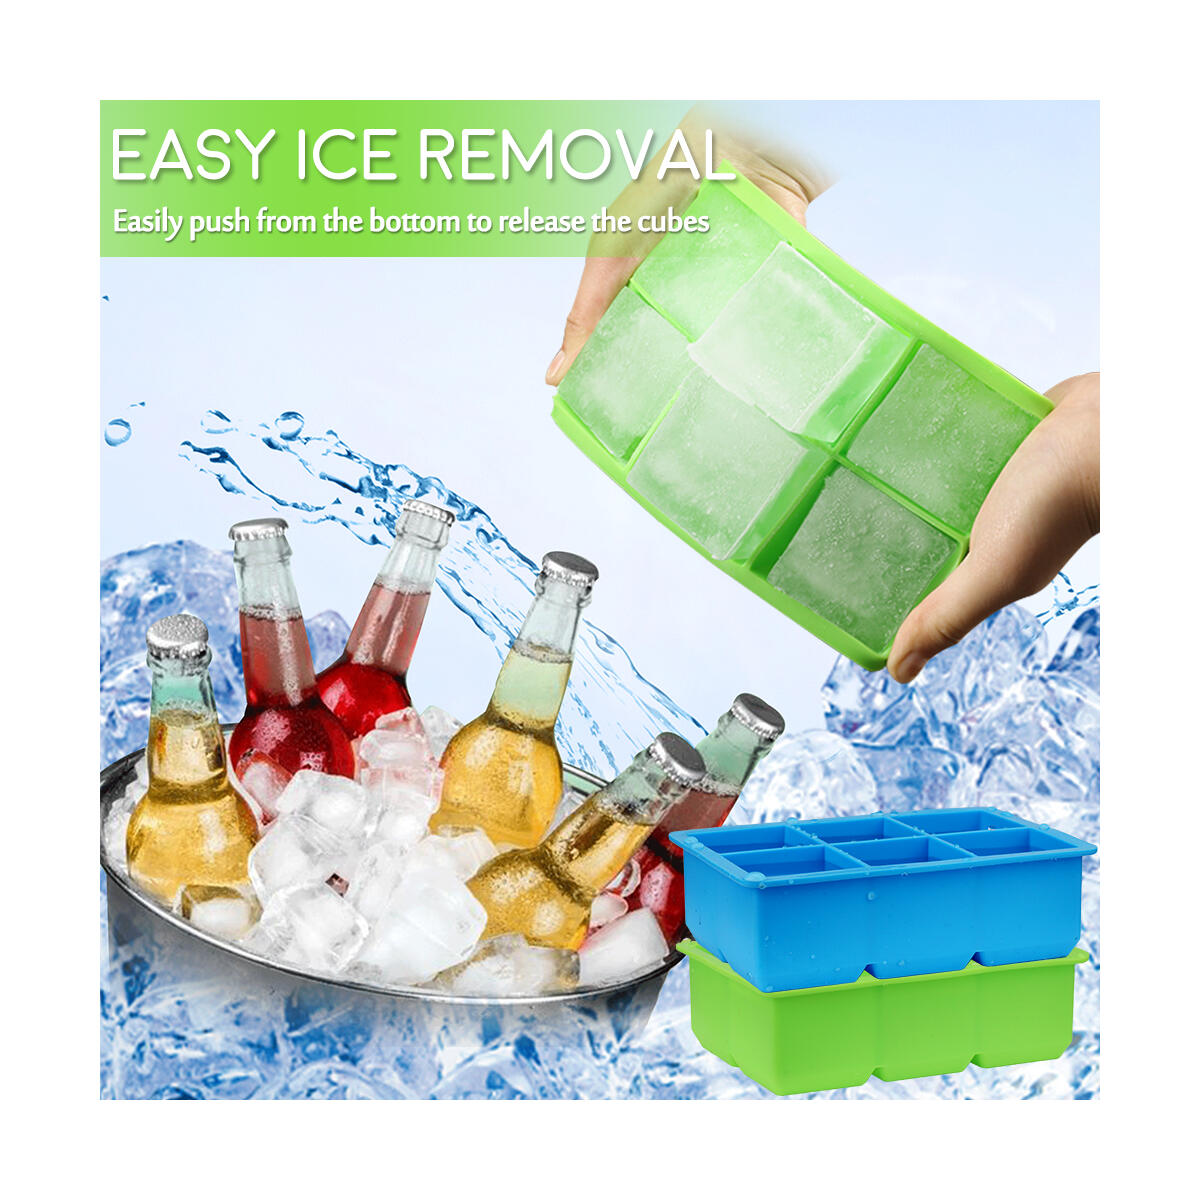 Ice Cube Trays - CASELAND 2 Pack Large Silicone Ice Trays with Lid for Whiskey and Cocktails, Keep Drinks Chilled Ice Cube Molds Reusable and BPA Free